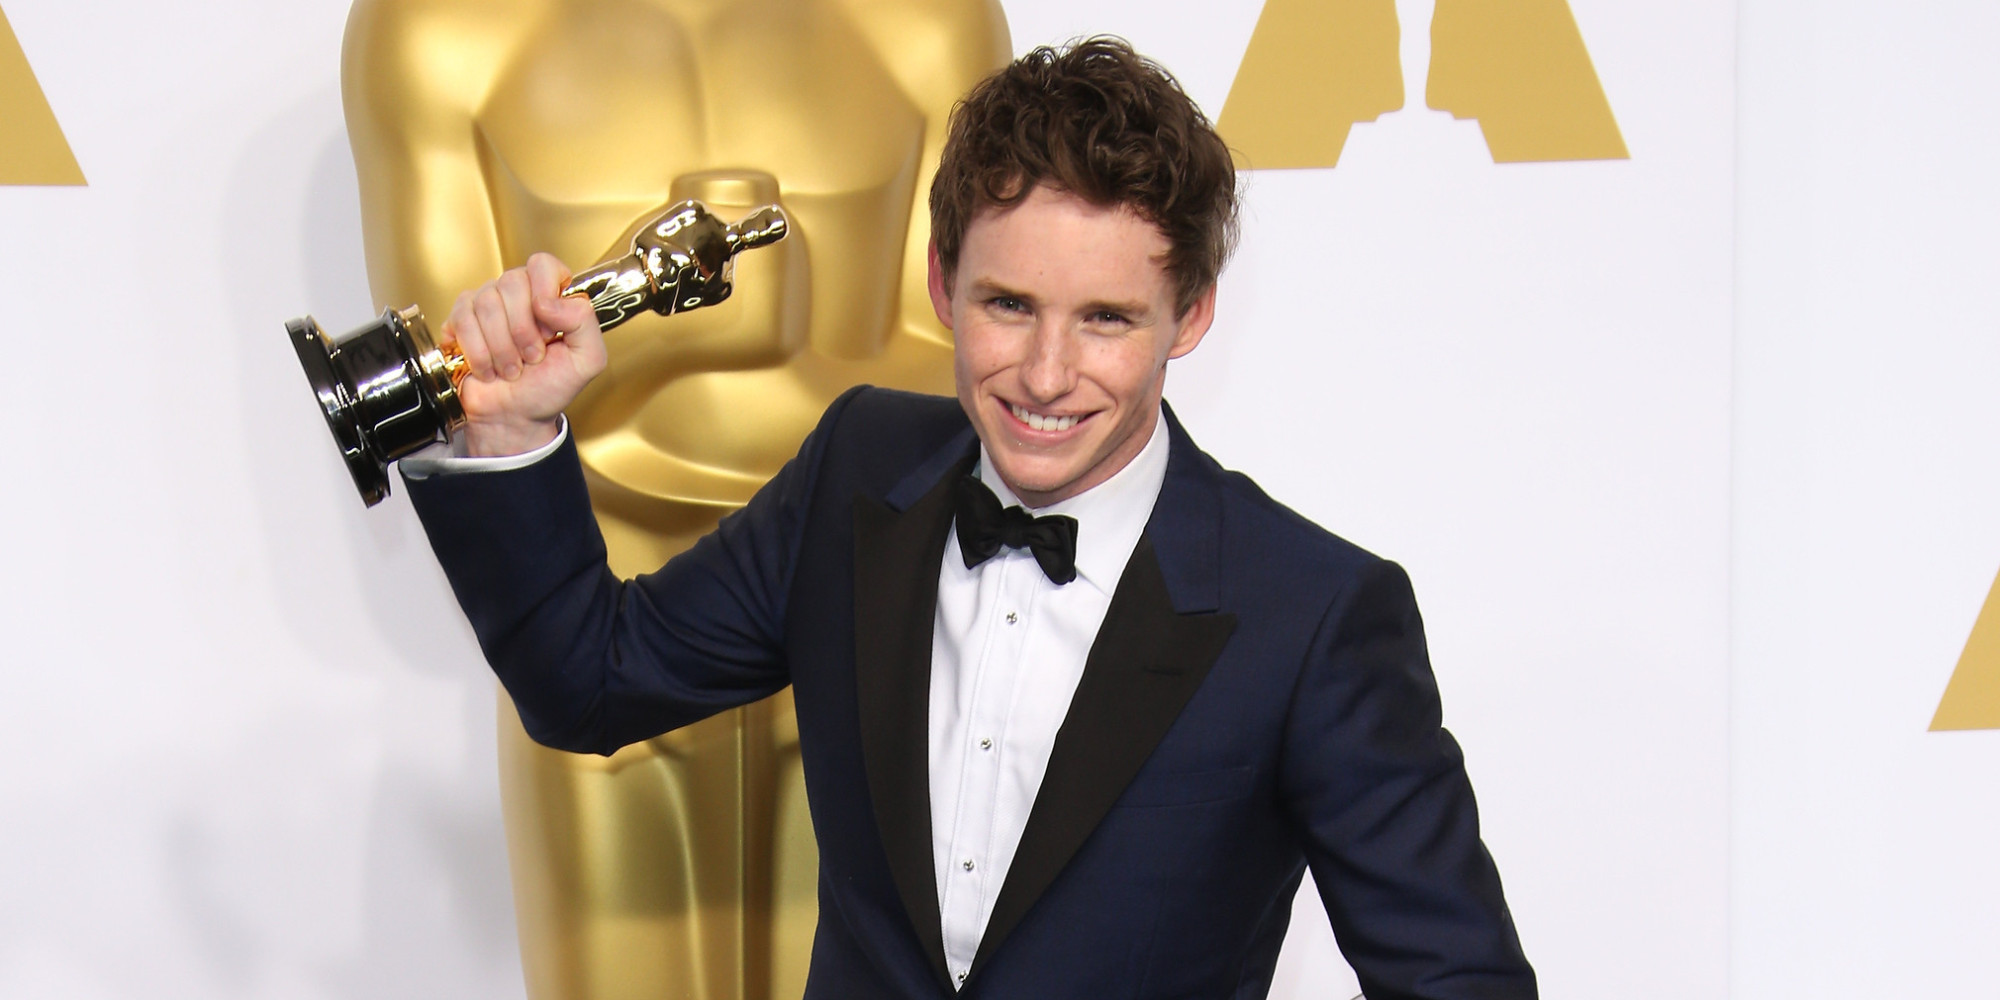 HOLLYWOOD, CA - FEBRUARY 22: Eddie Redmayne poses in the press room with his award for Best Actor at the 87th Annual Academy Awards at Hollywood & Highland Center on February 22, 2015 in Los Angeles, California. (Photo by Dan MacMedan/WireImage)